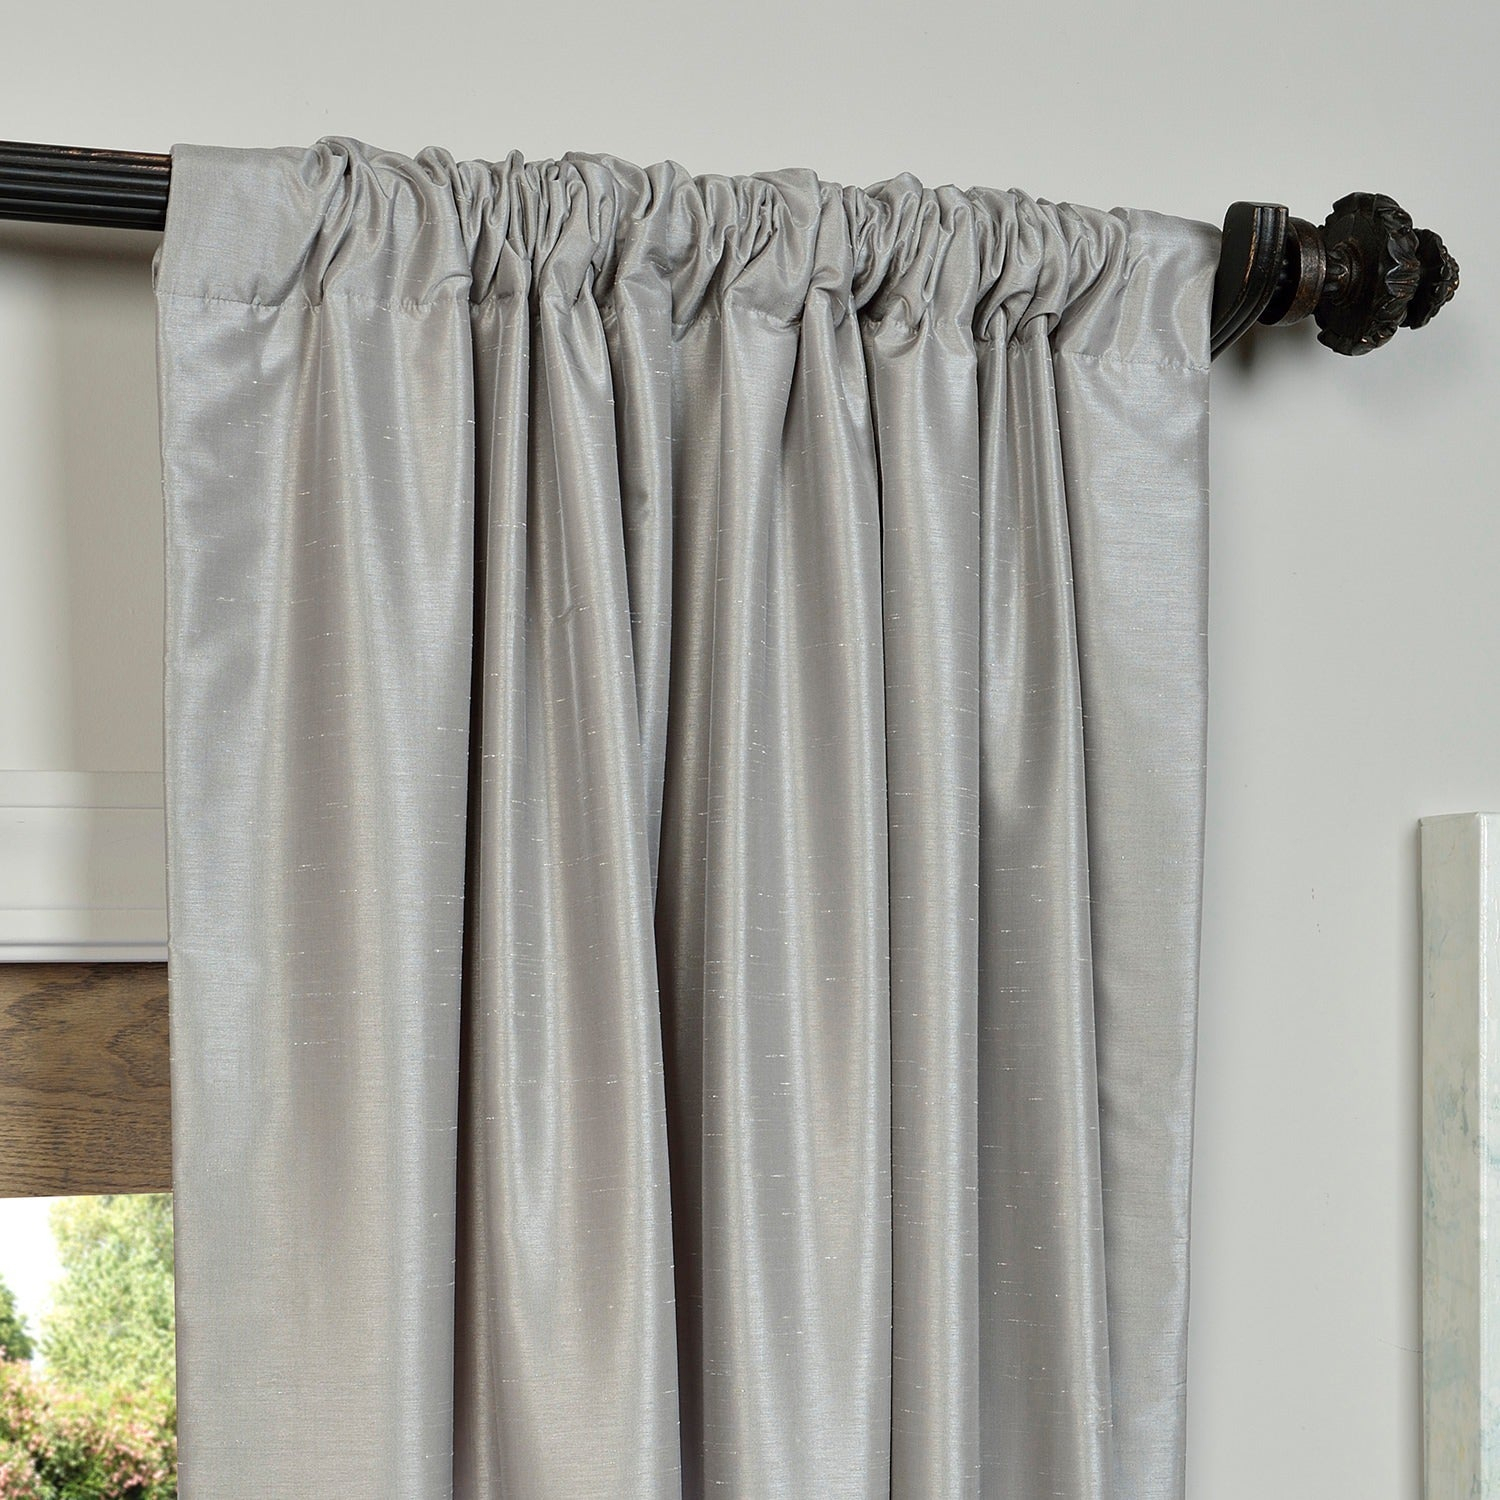 """Exclusive Fabrics Silver Vintage Faux Textured Dupioni Silk Curtain Panel 96"""" (As Is Item) With Regard To Silver Vintage Faux Textured Silk Curtain Panels (View 12 of 30)"""